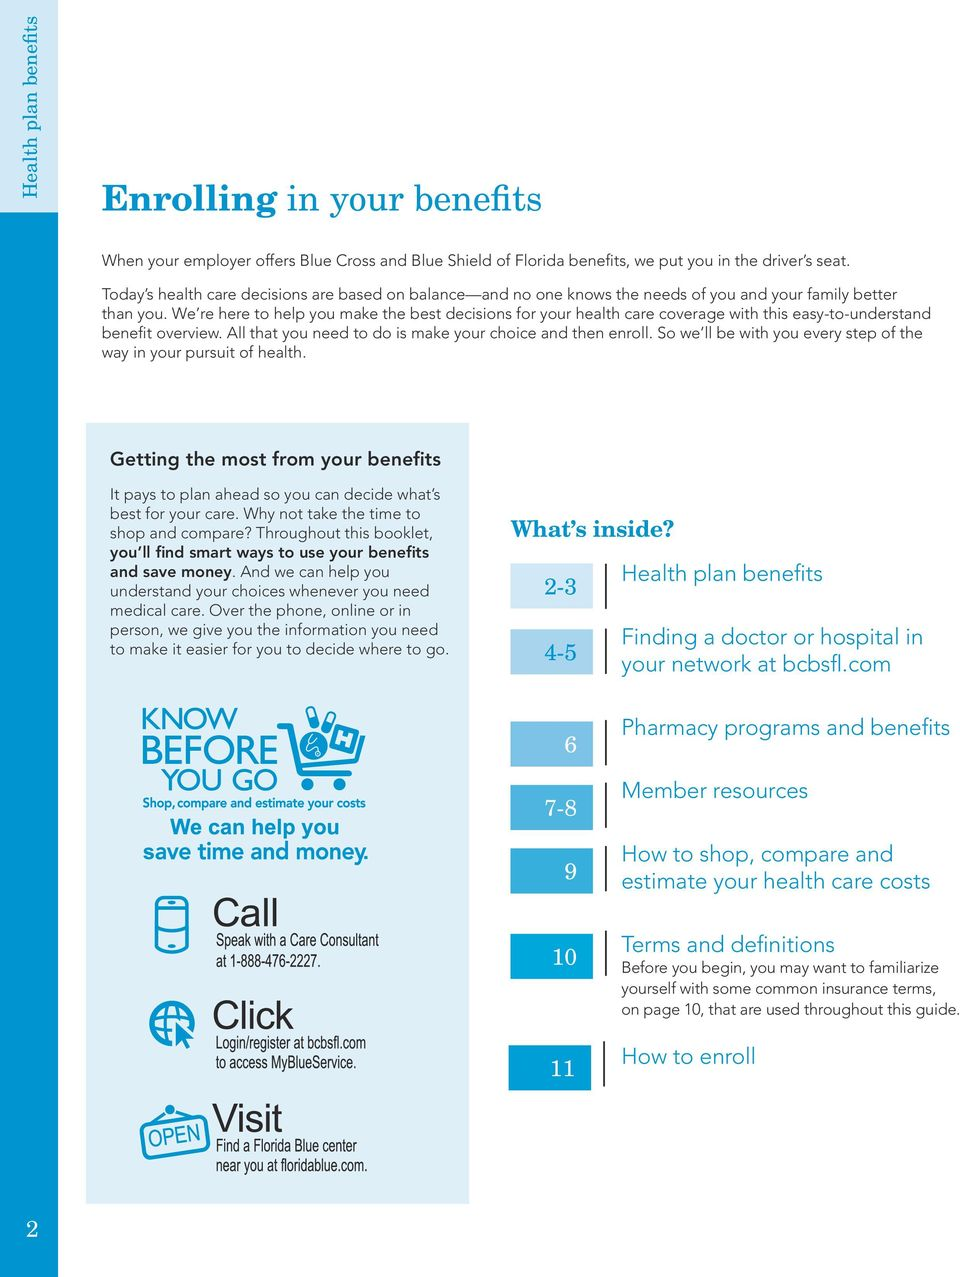 We re here to help you make the best decisions for your health care coverage with this easy-to-understand benefit overview. All that you need to do is make your choice and then enroll.